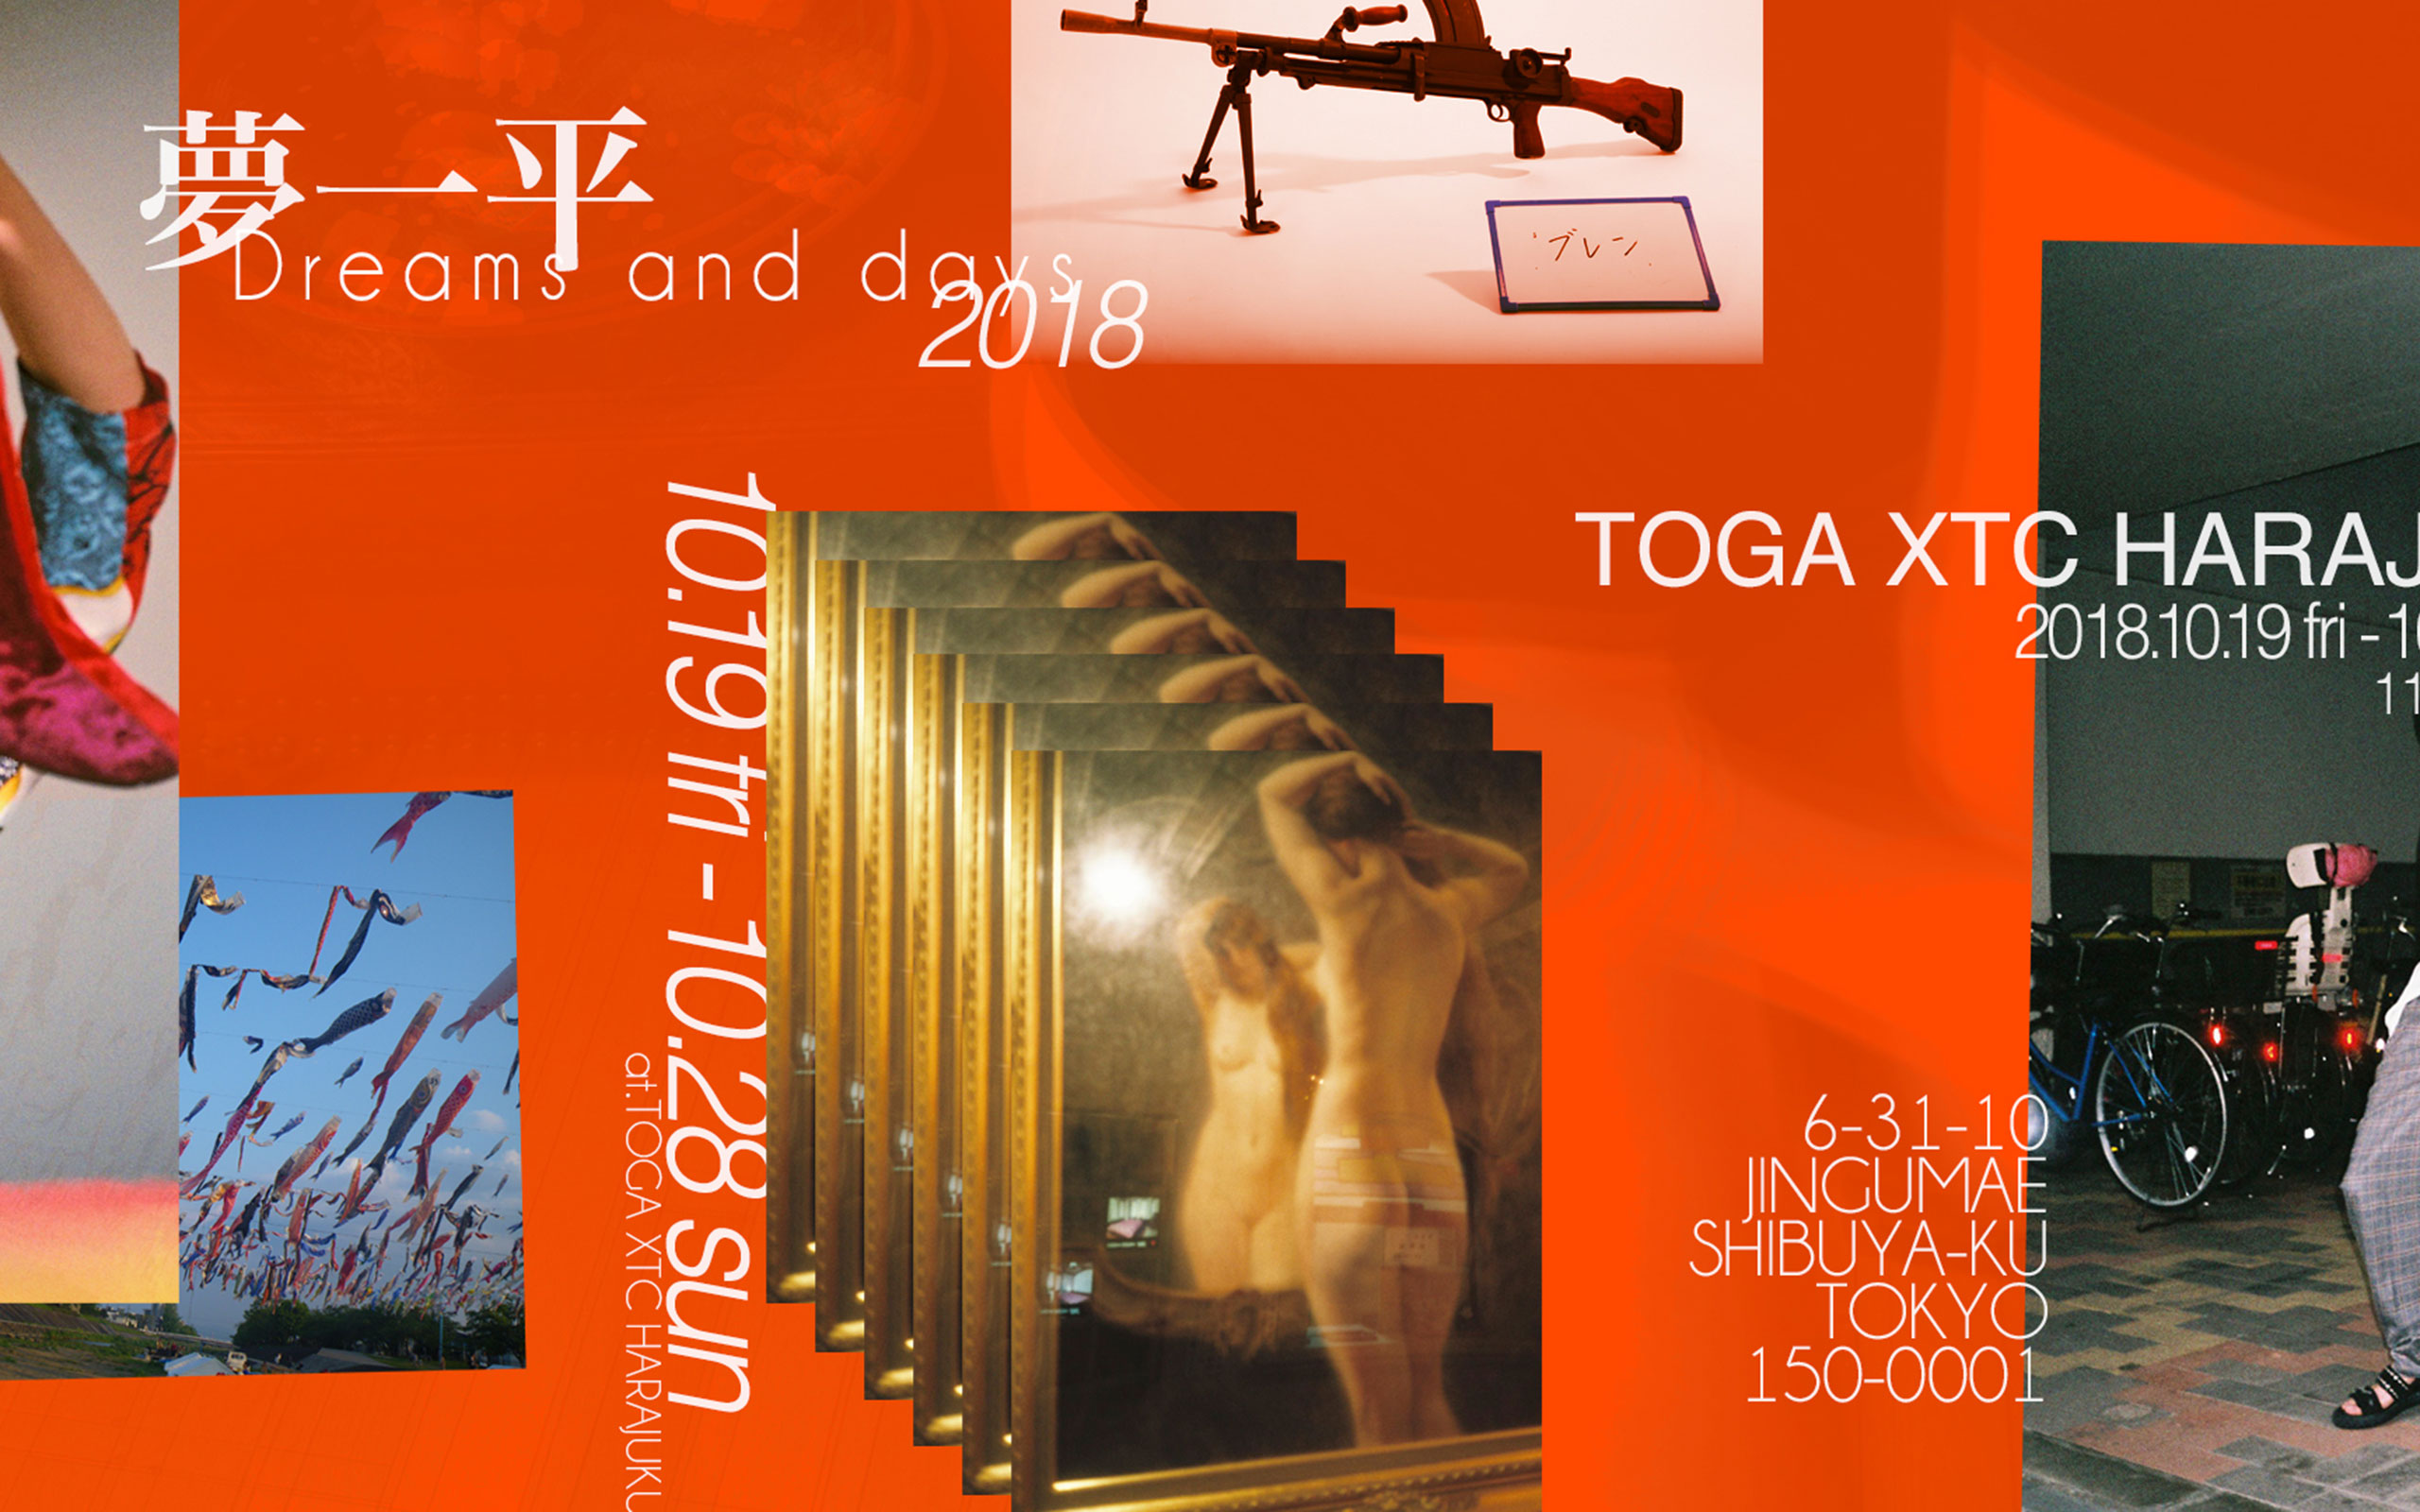 YUMEIPPEI Photo Exhibition 'Dreams and days' At TOGA XTC